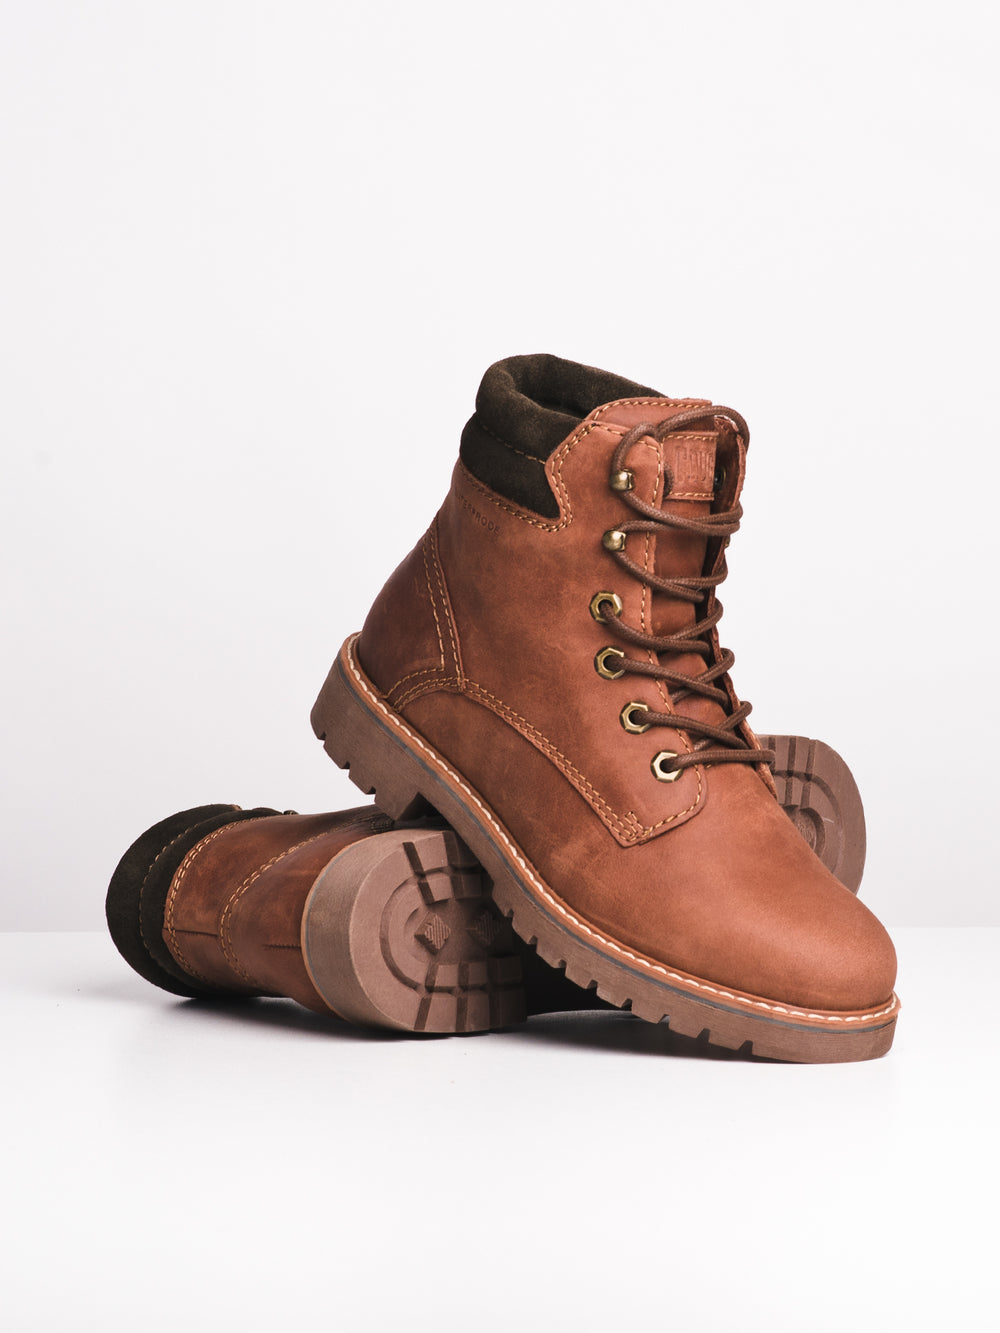 WOMENS HESTON - BROWN